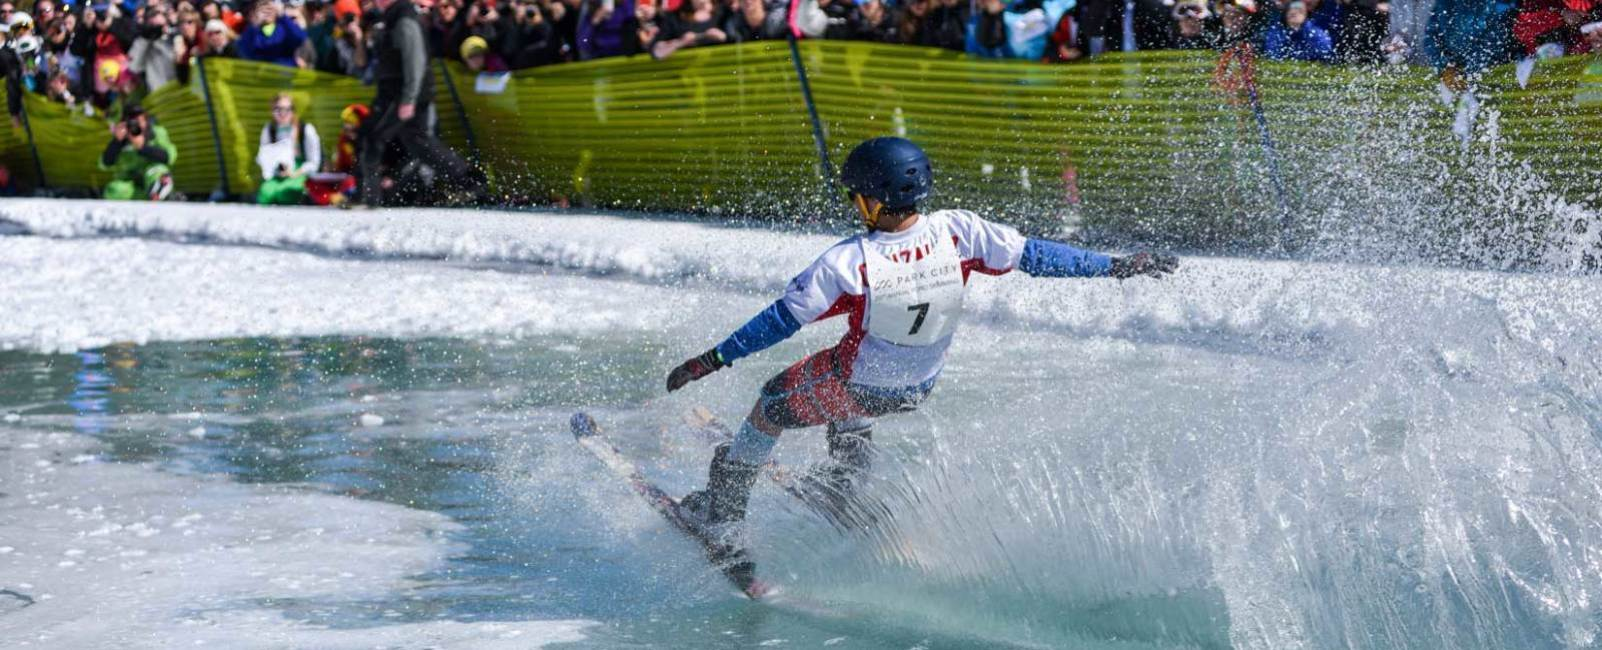 Pond Skimming: Slippery When Wet